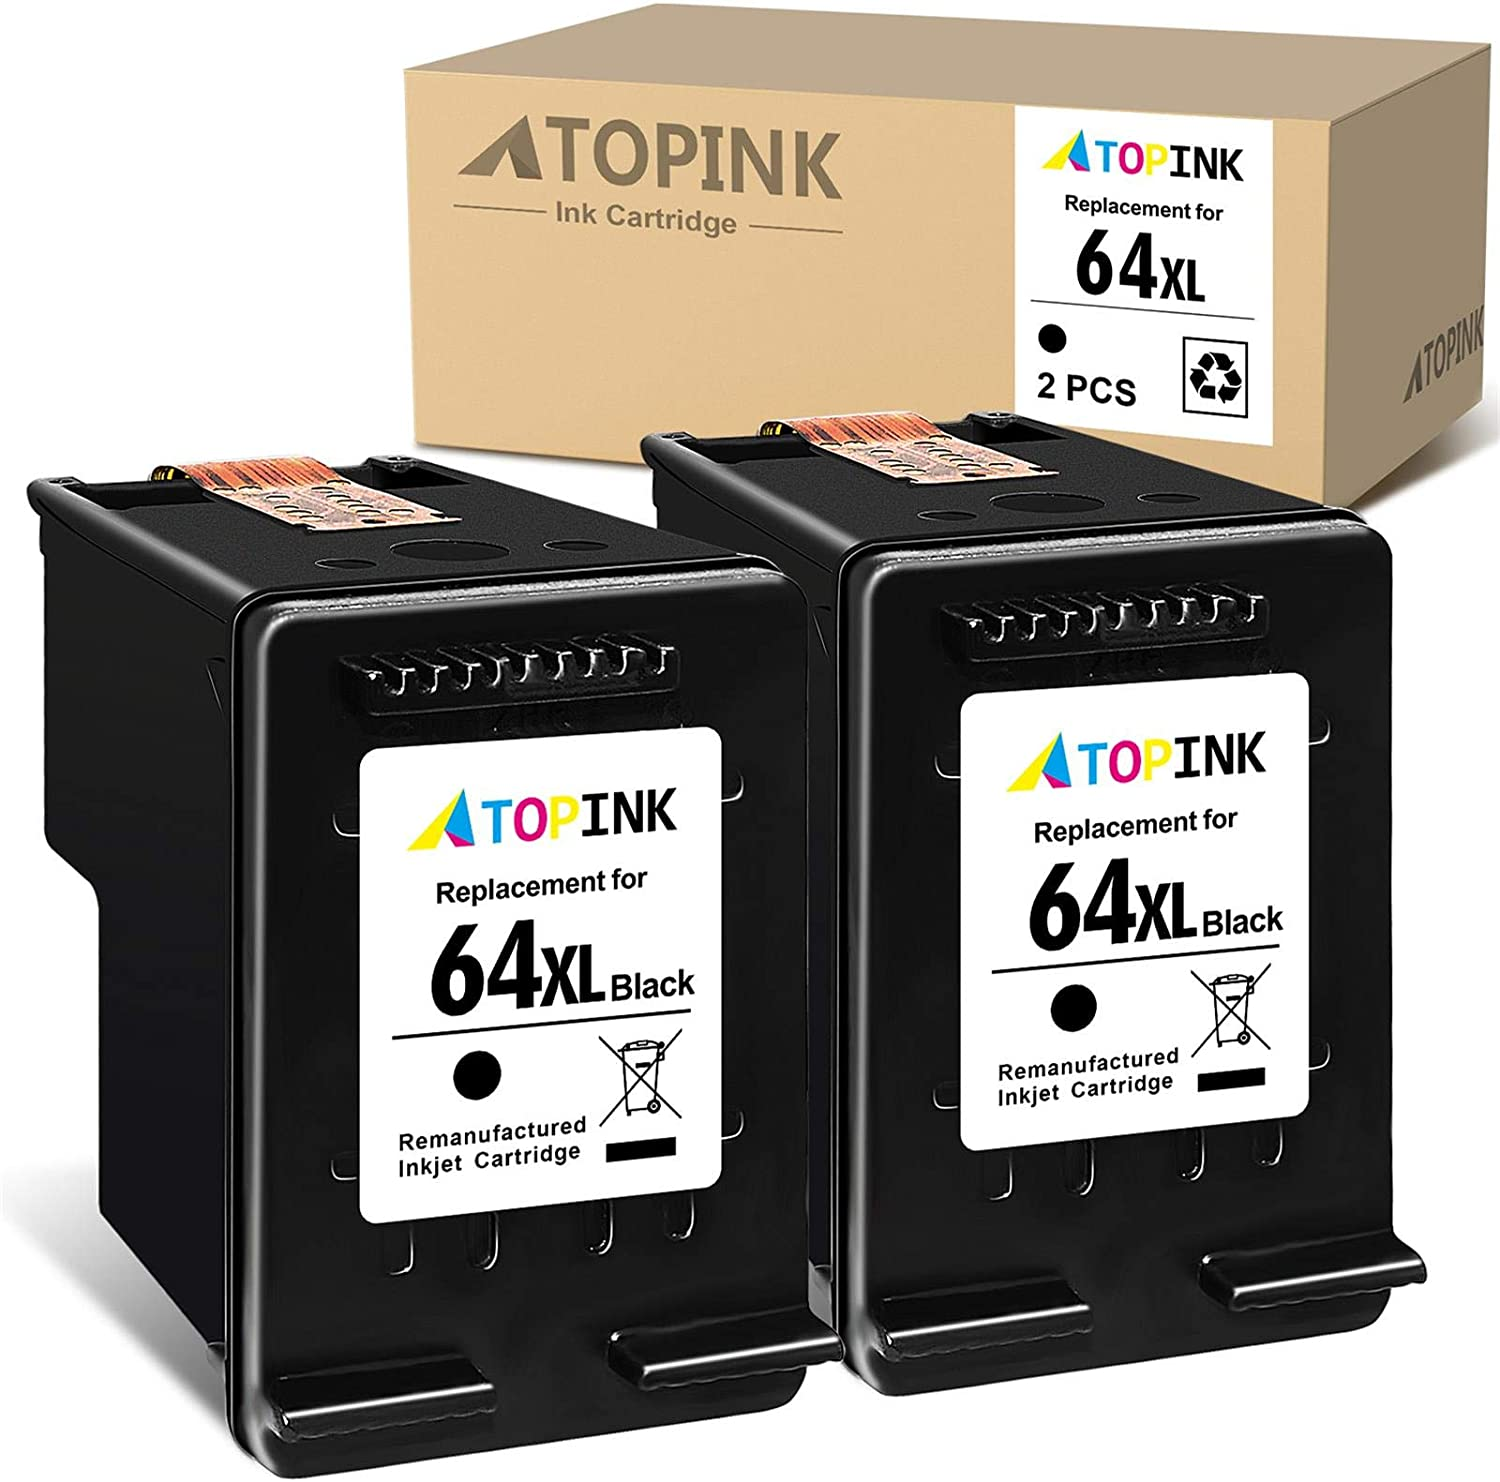 ATOPINK Remanufactured Ink Cartridge Replacement for HP 64XL 64 XL Fit in Envy Photo 7855 6222 7155 7800 7158 7164 6255 6252 7858 7120 7130 6220 6230 6232 6234 Tango X Smart All-in-One (Black, 2-Pack)